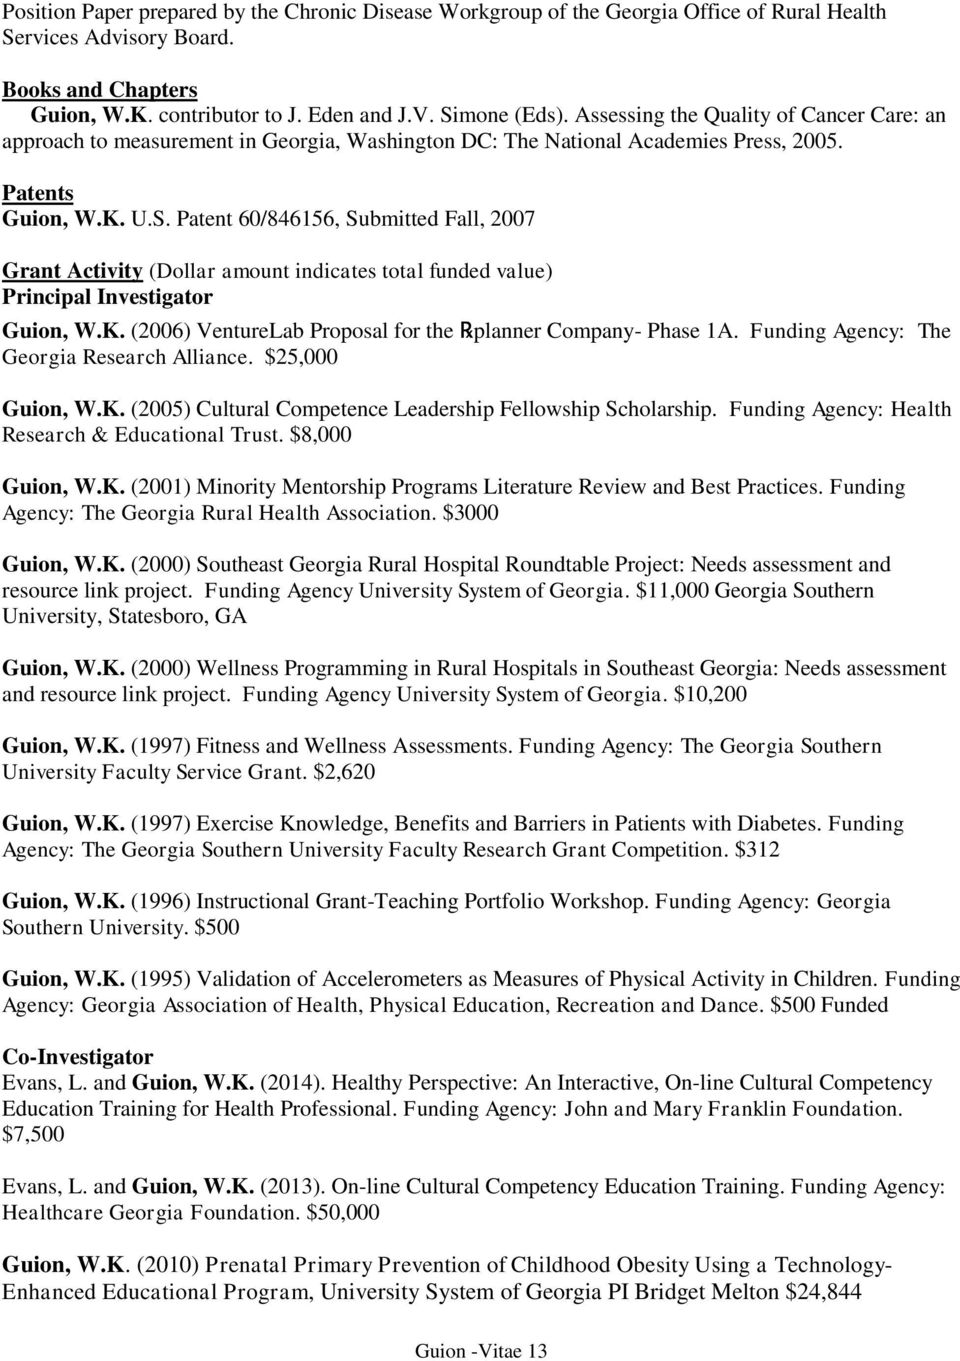 Funded Programs, Activities and Research